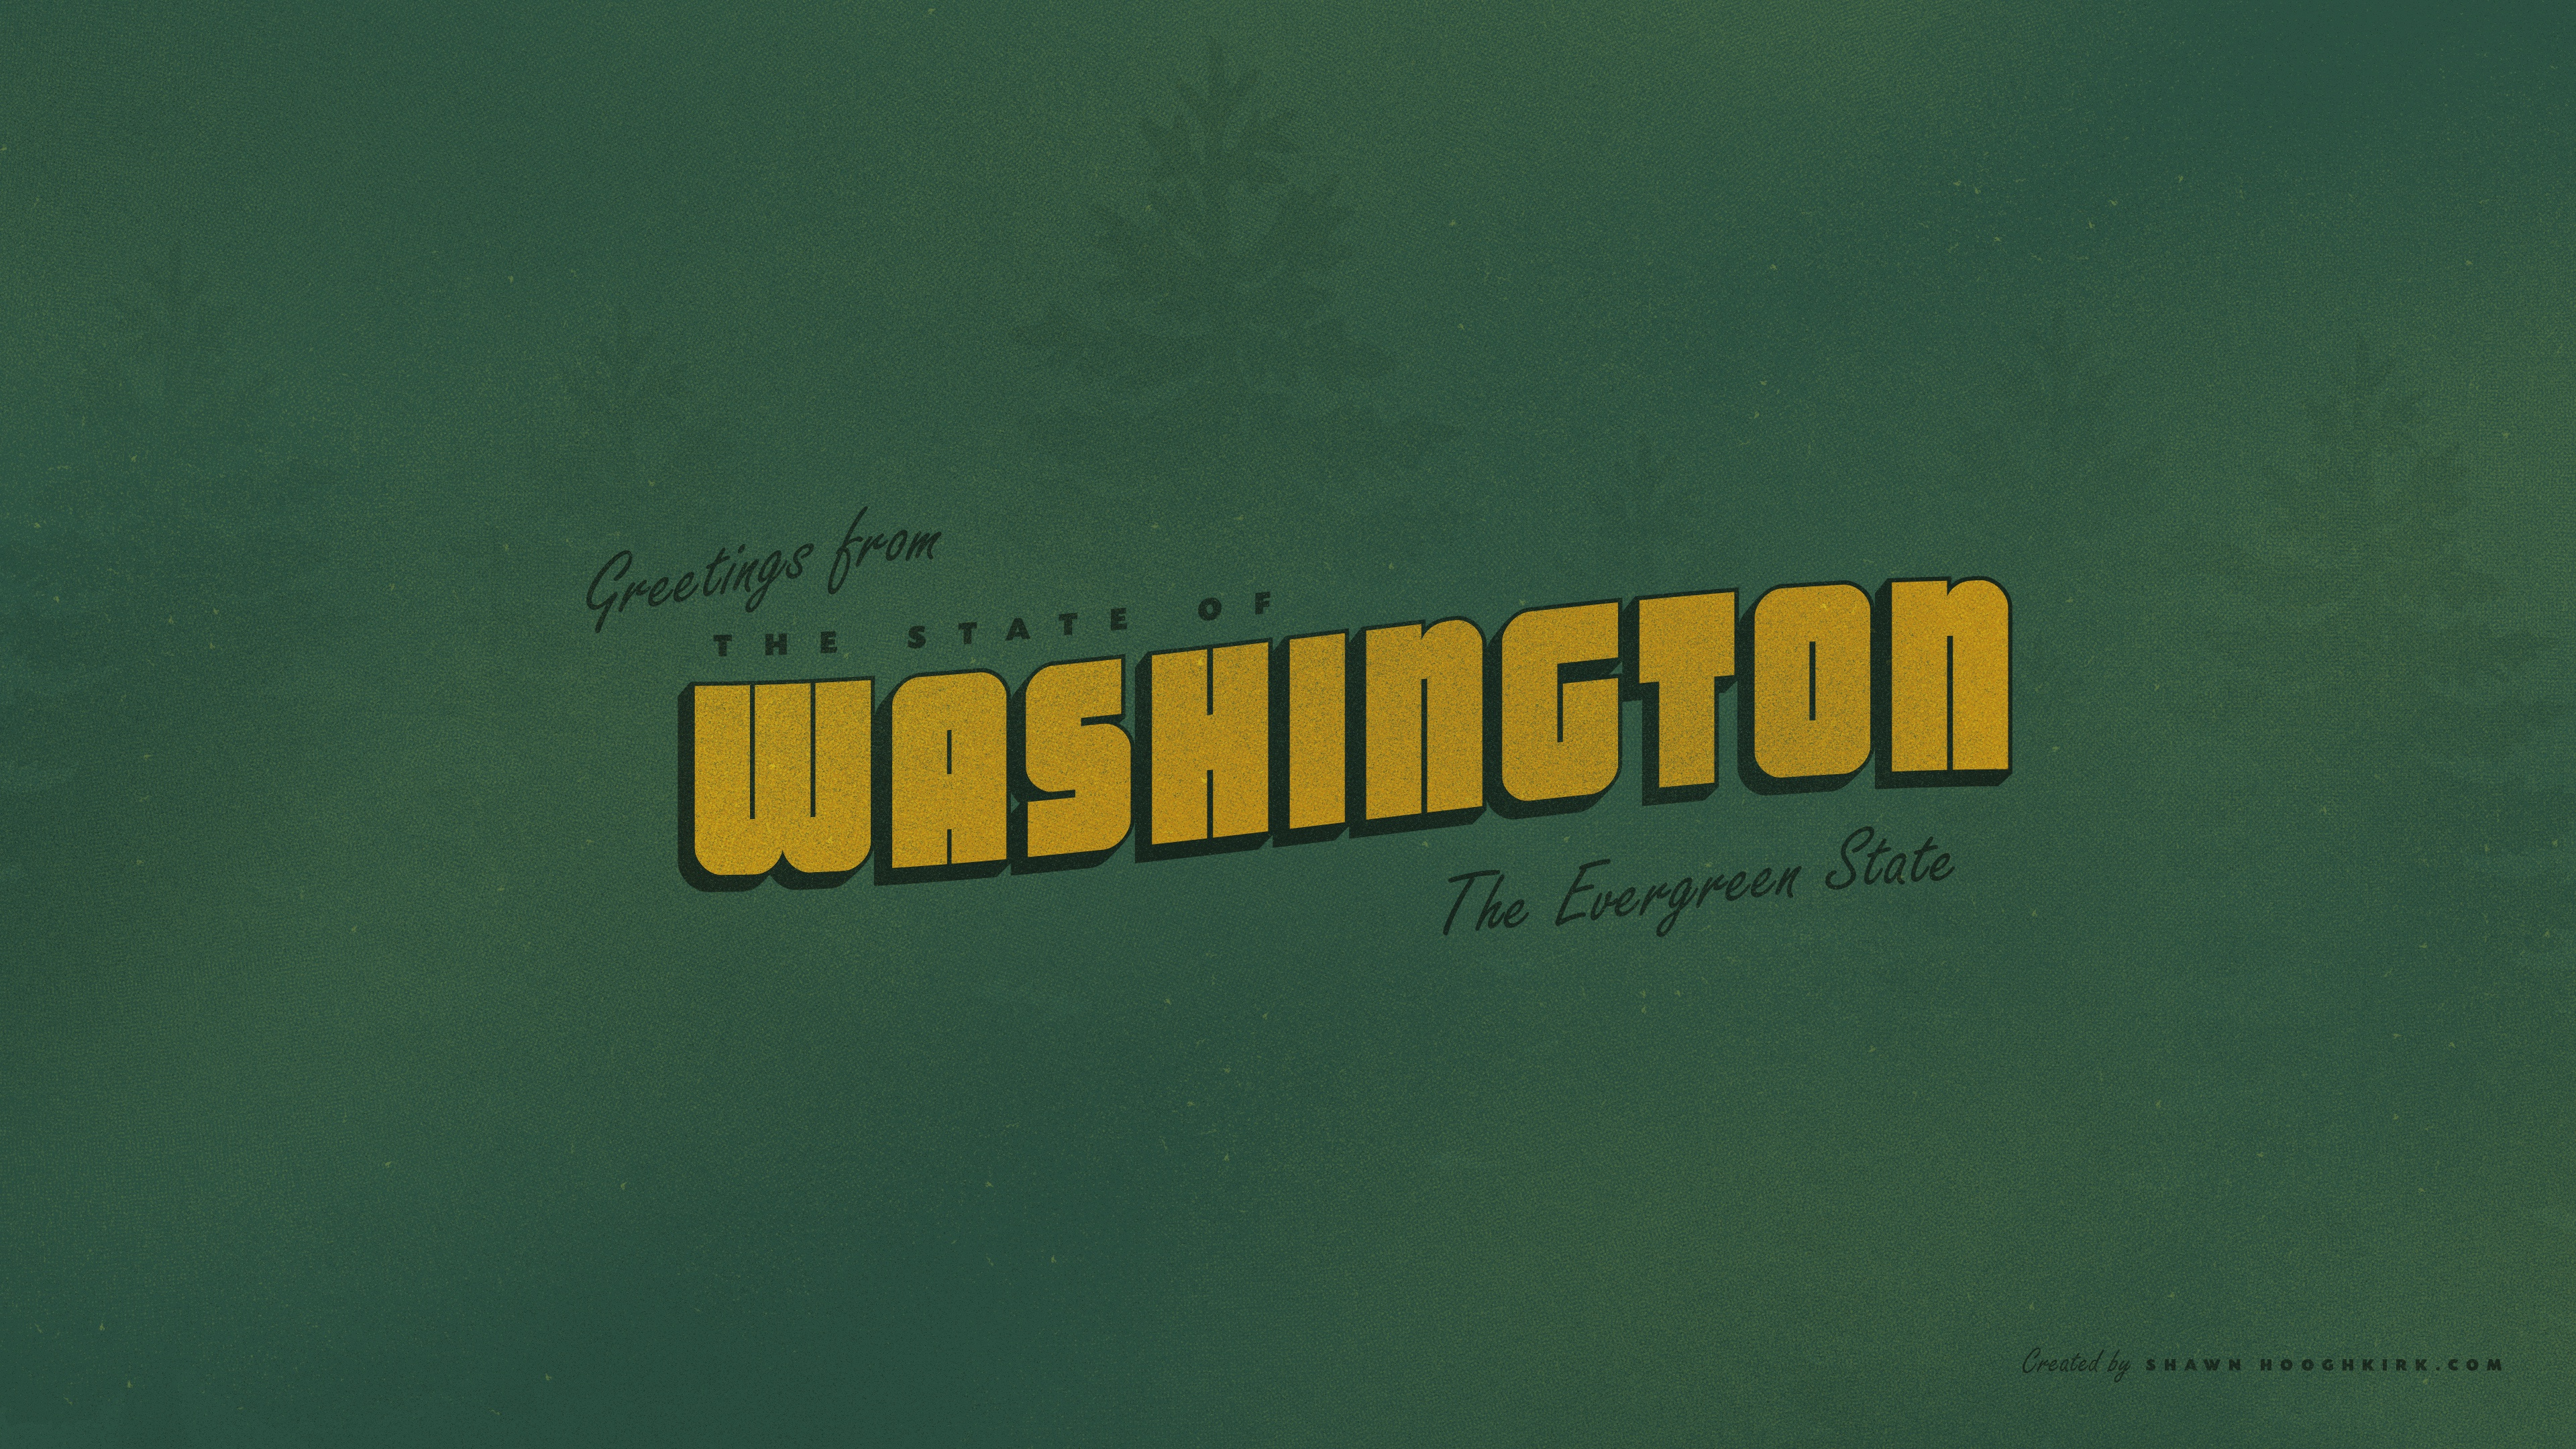 Greentings from the state of washington